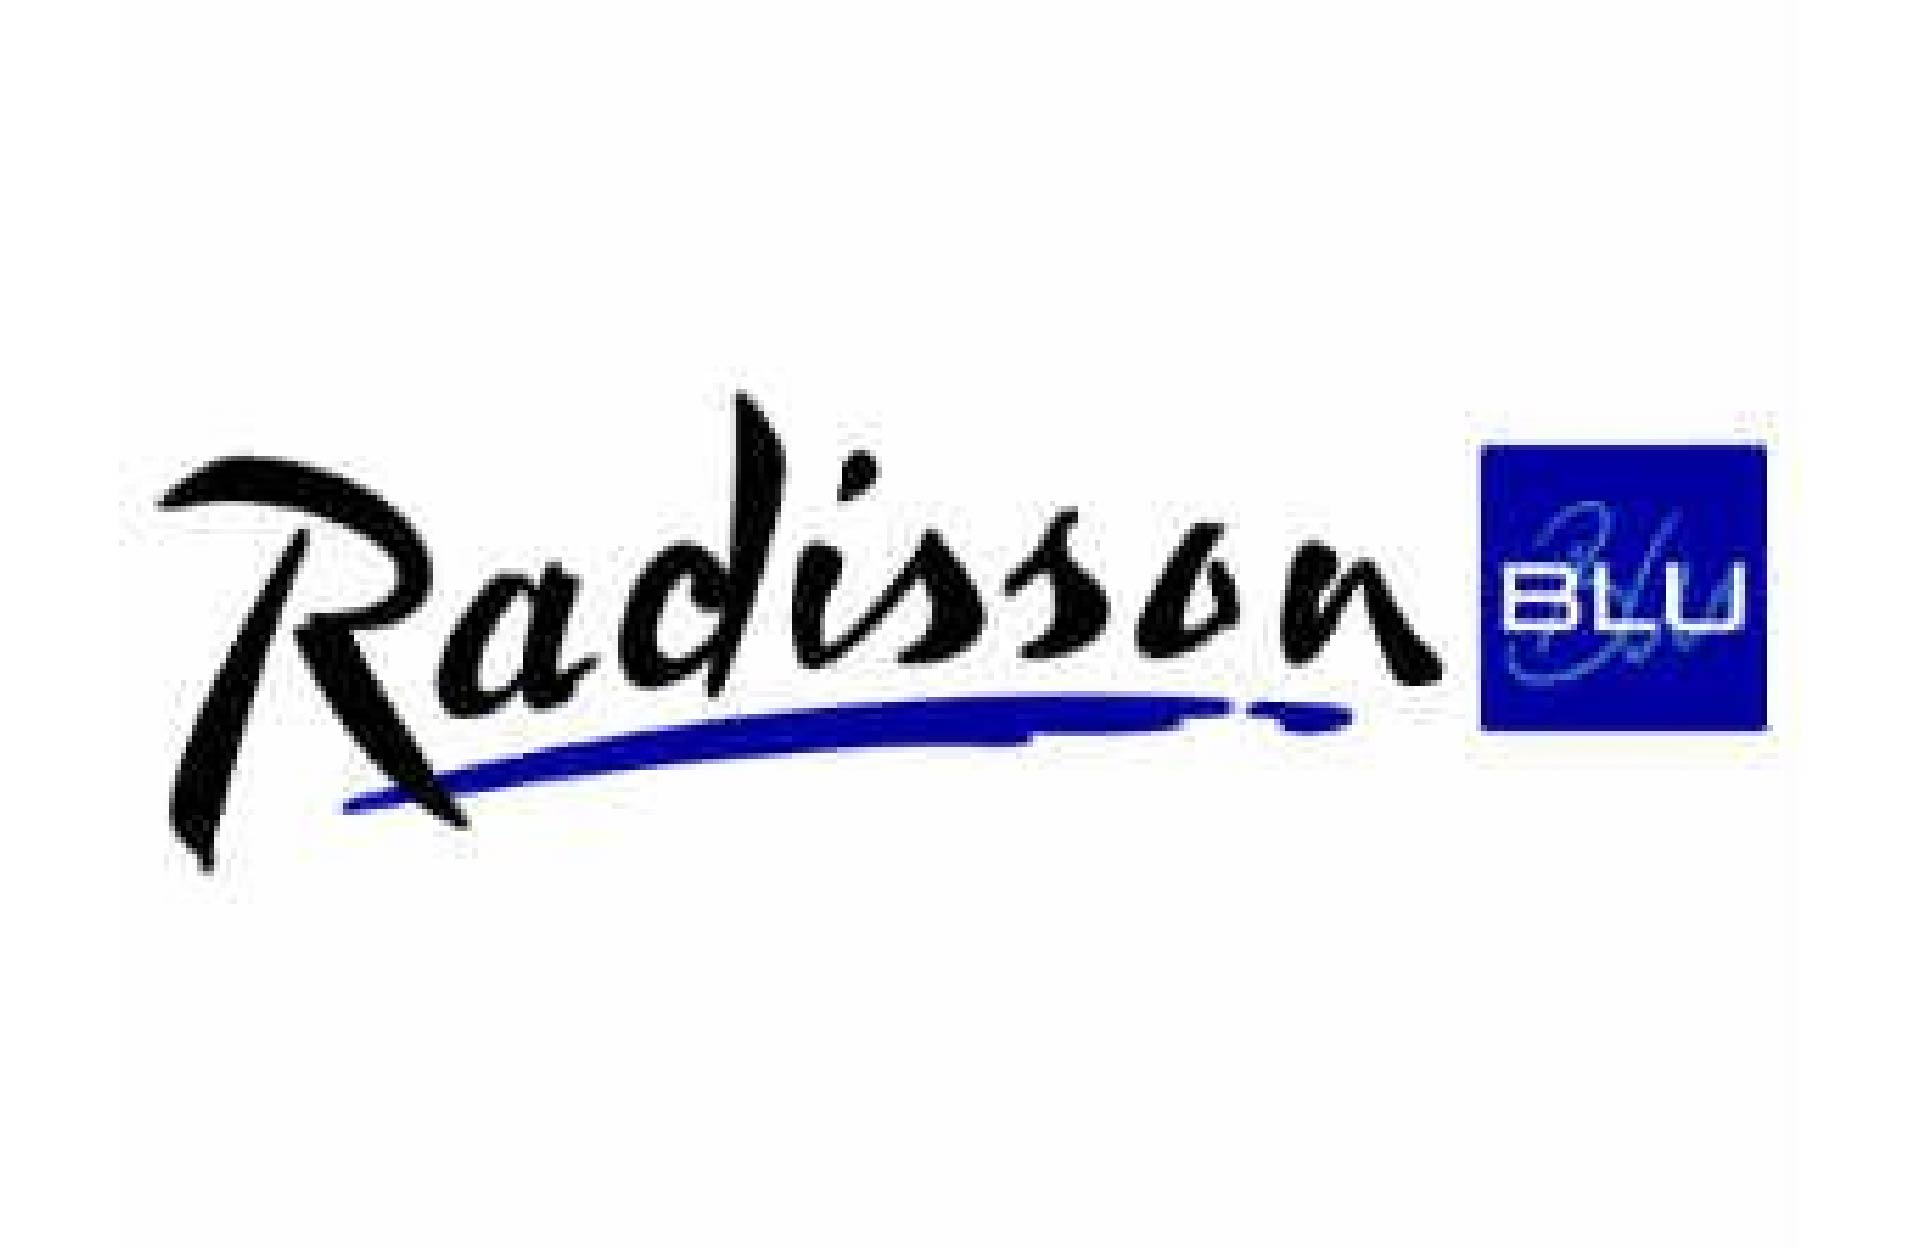 radisson blue-01